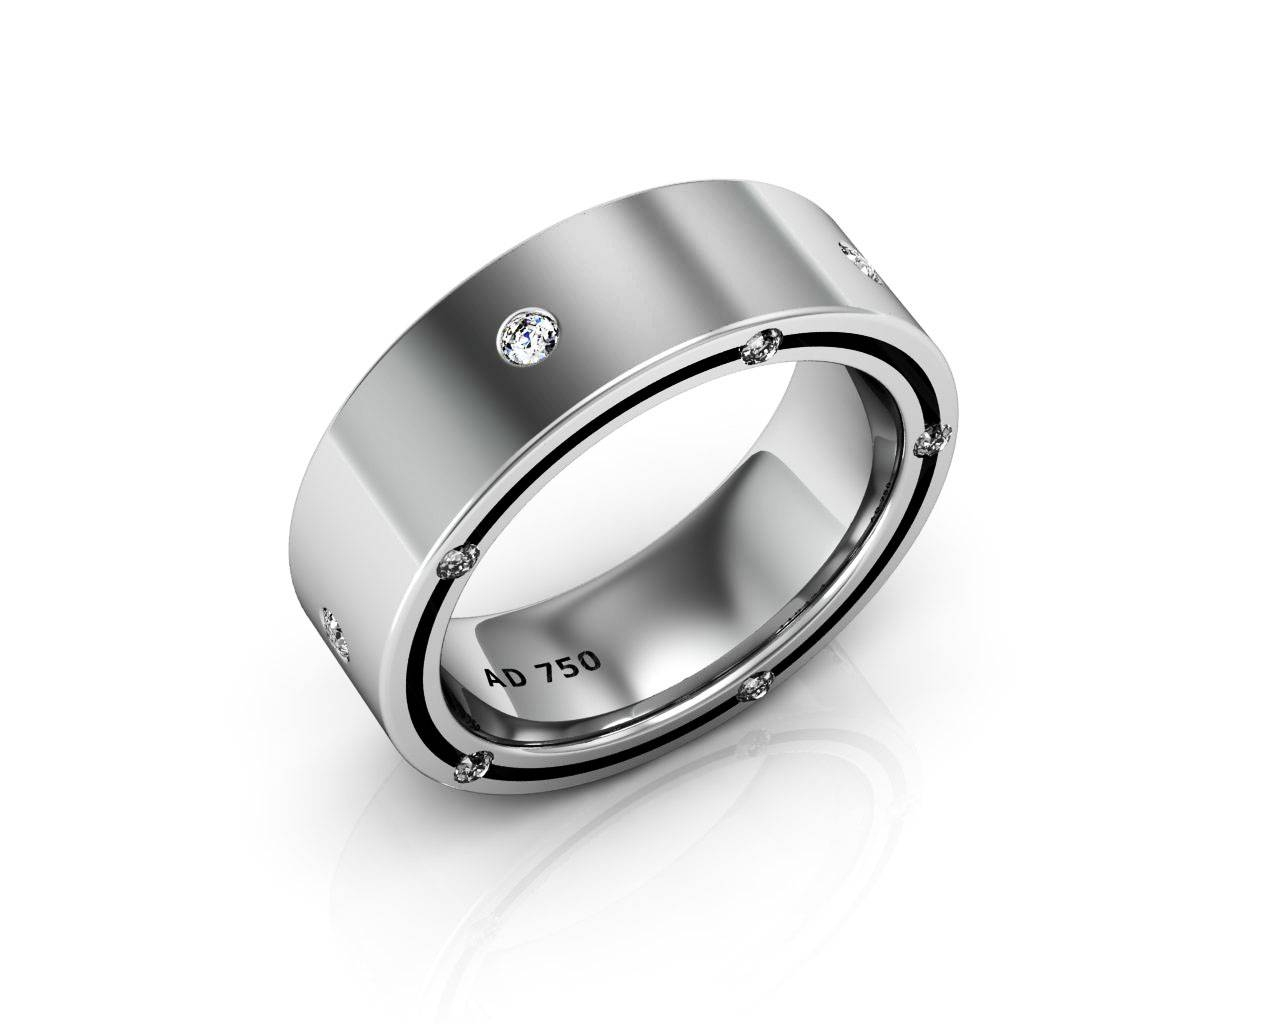 Find Out About Mens White Gold Wedding Bands | Wedding Ideas In Black And White Gold Men's Wedding Bands (View 6 of 15)